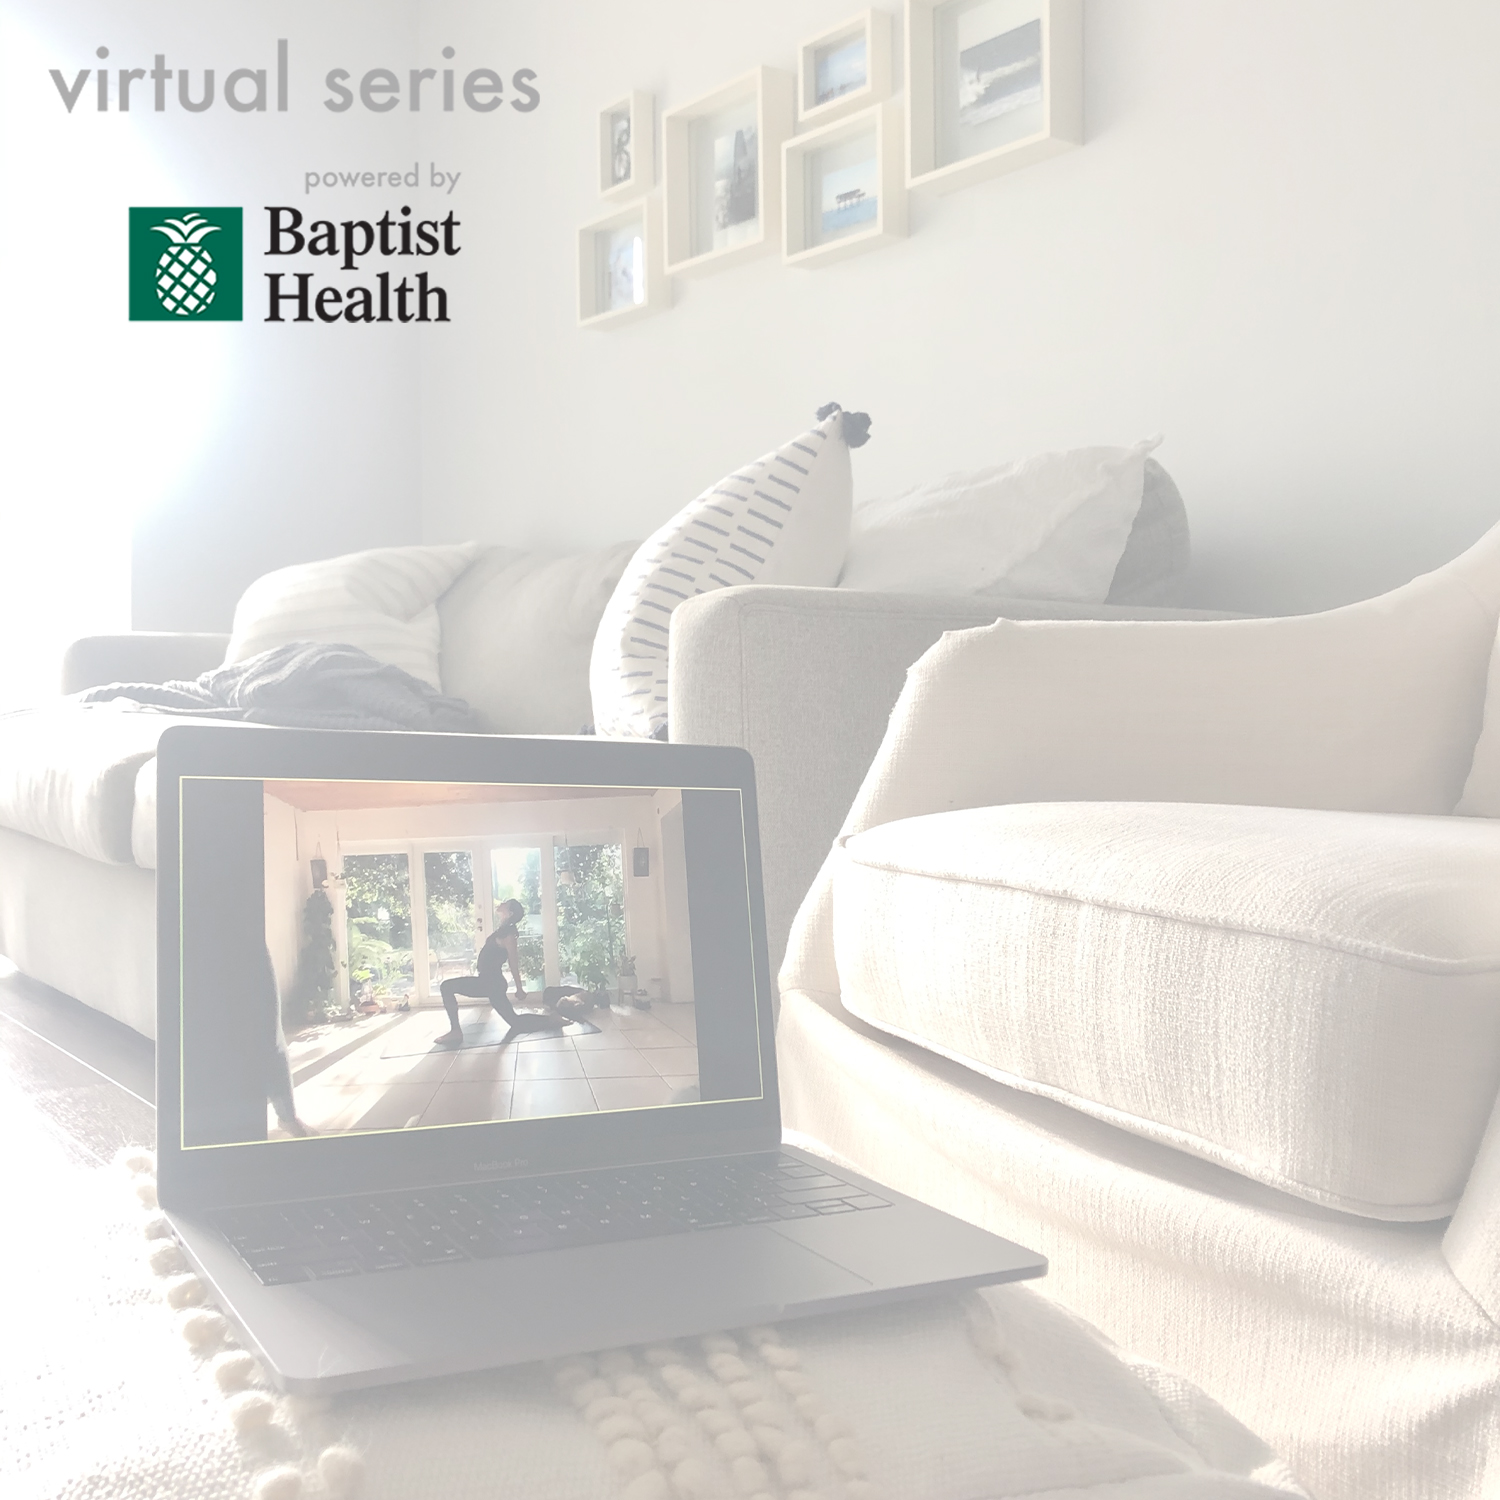 Baptist Health virtual events